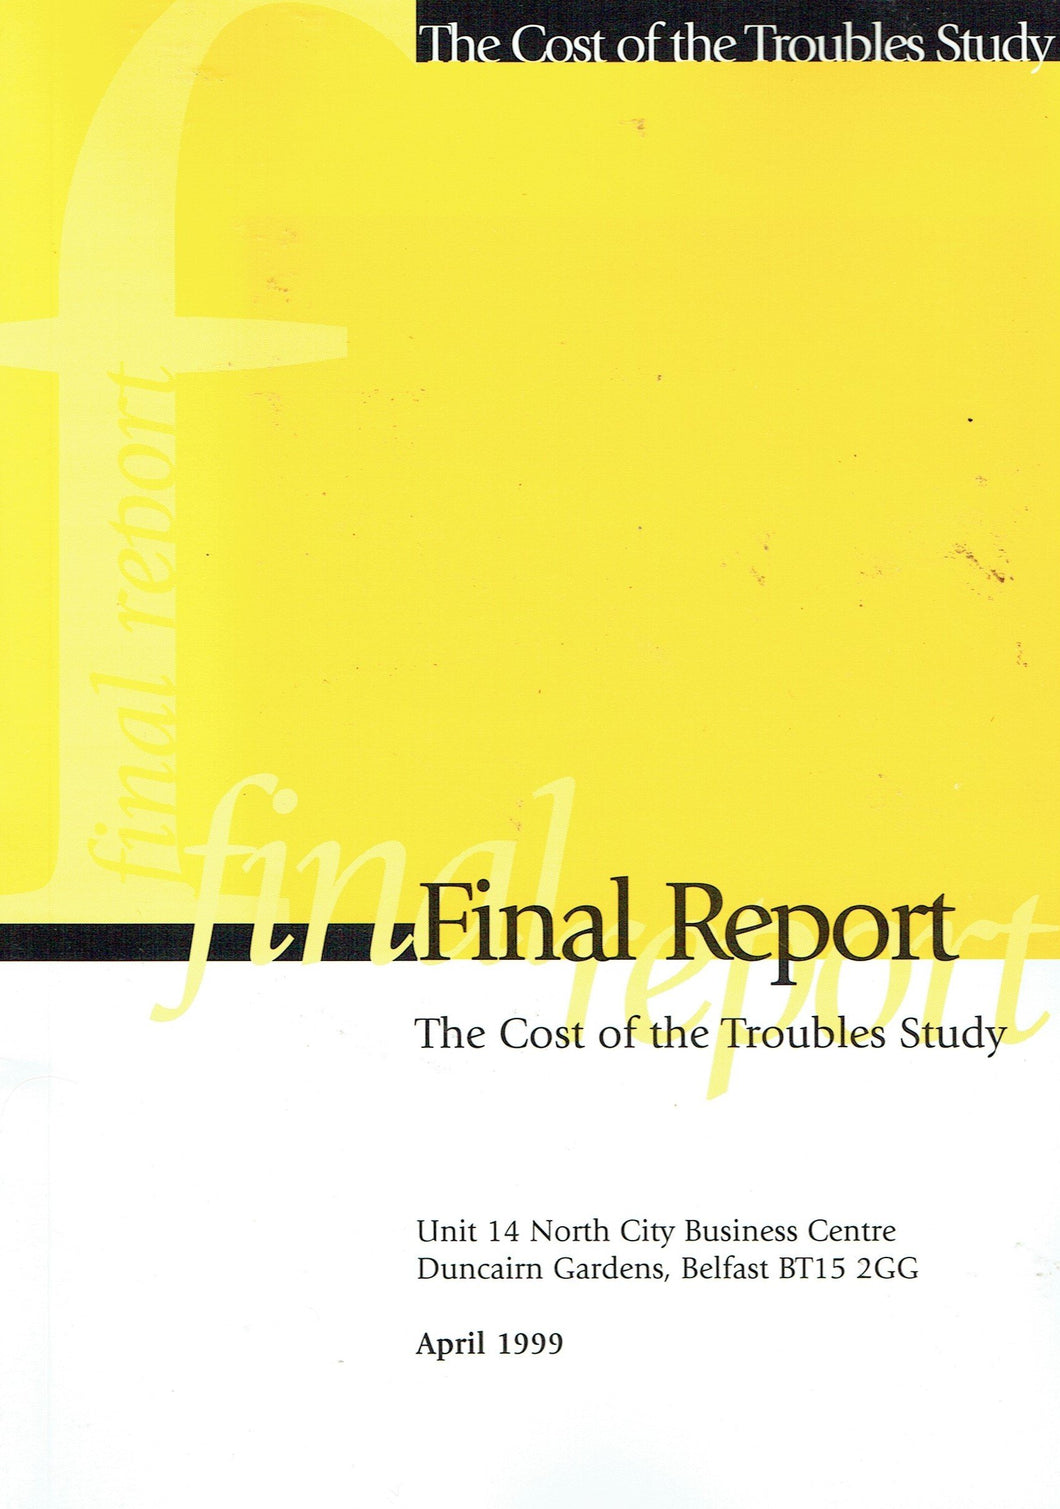 Final report: The Cost of the Troubles Study